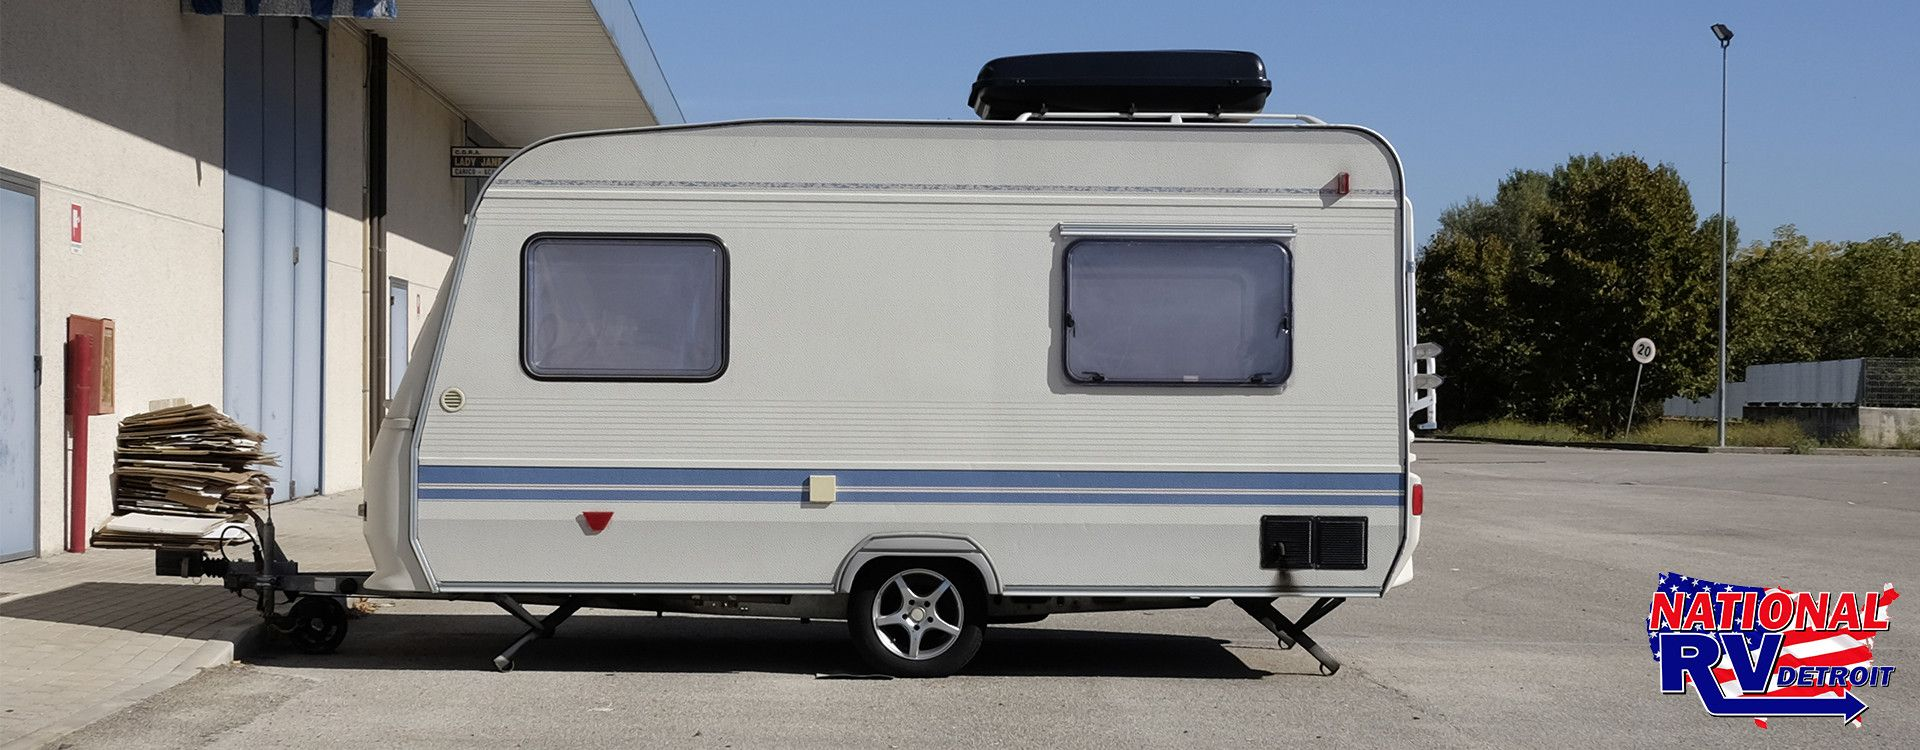 Leveling an RV Quickly and Easily  National RV Detroit RV Blog